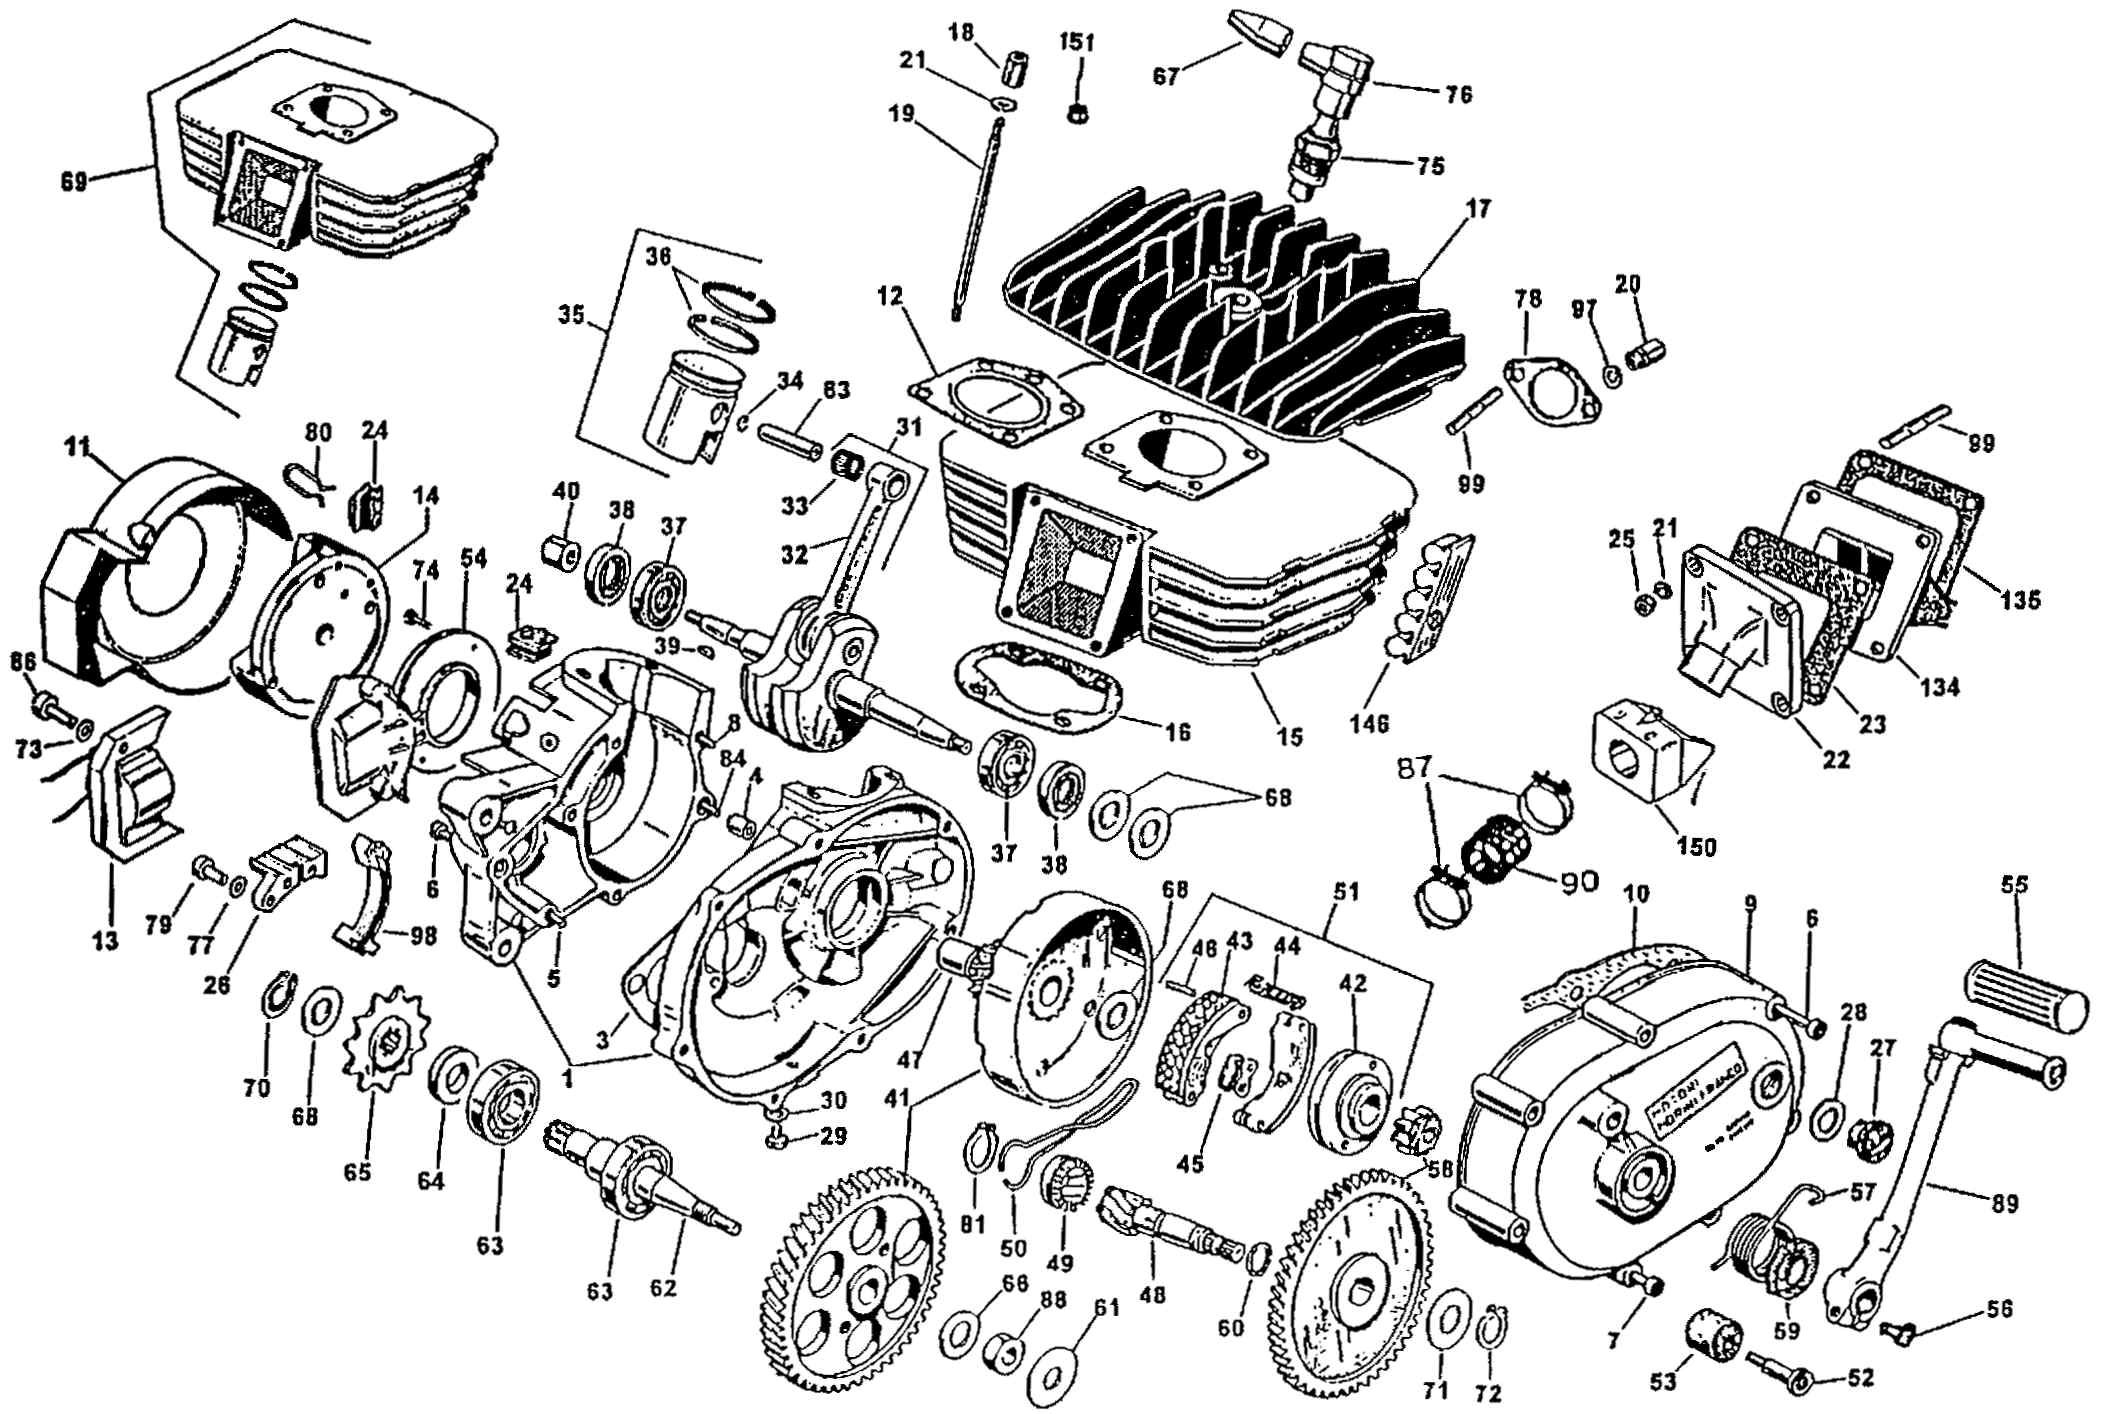 bicycle motor wiring diagram wirdig exploded view of a motorcycle motor all about motorcycle diagram